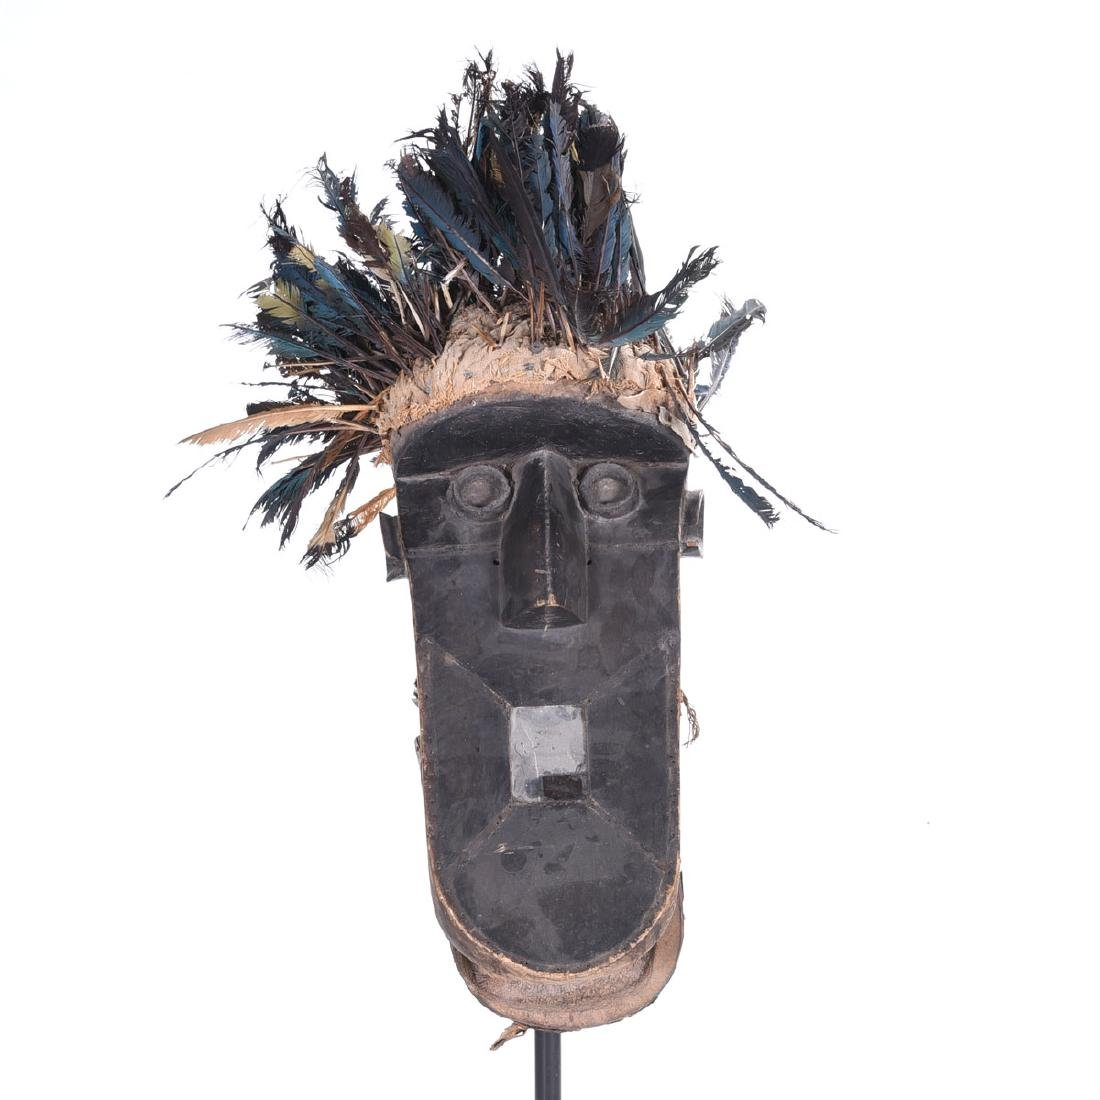 Toma Mask with Inset Mirror, Feather Headress, Black